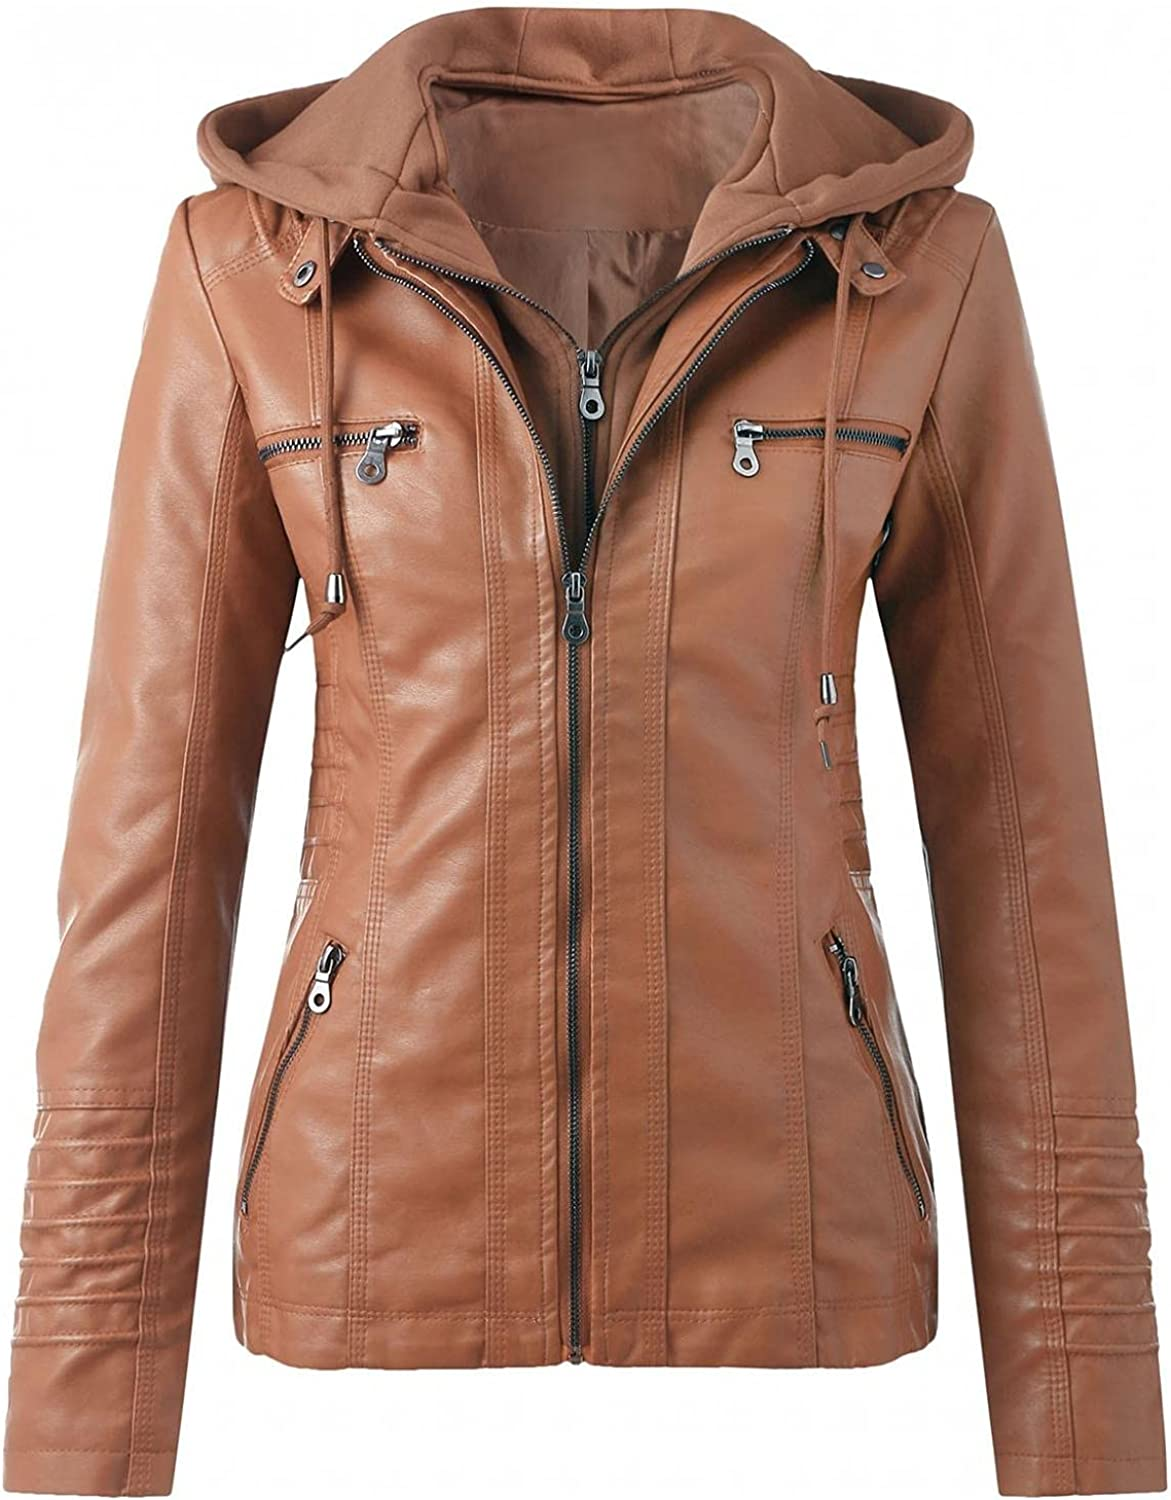 MAICC Women's Faux Leather Hooded Jacket Stand Collar Zip Up Slim Motorcycle Coat for Biker with Removable Hood Plus Size